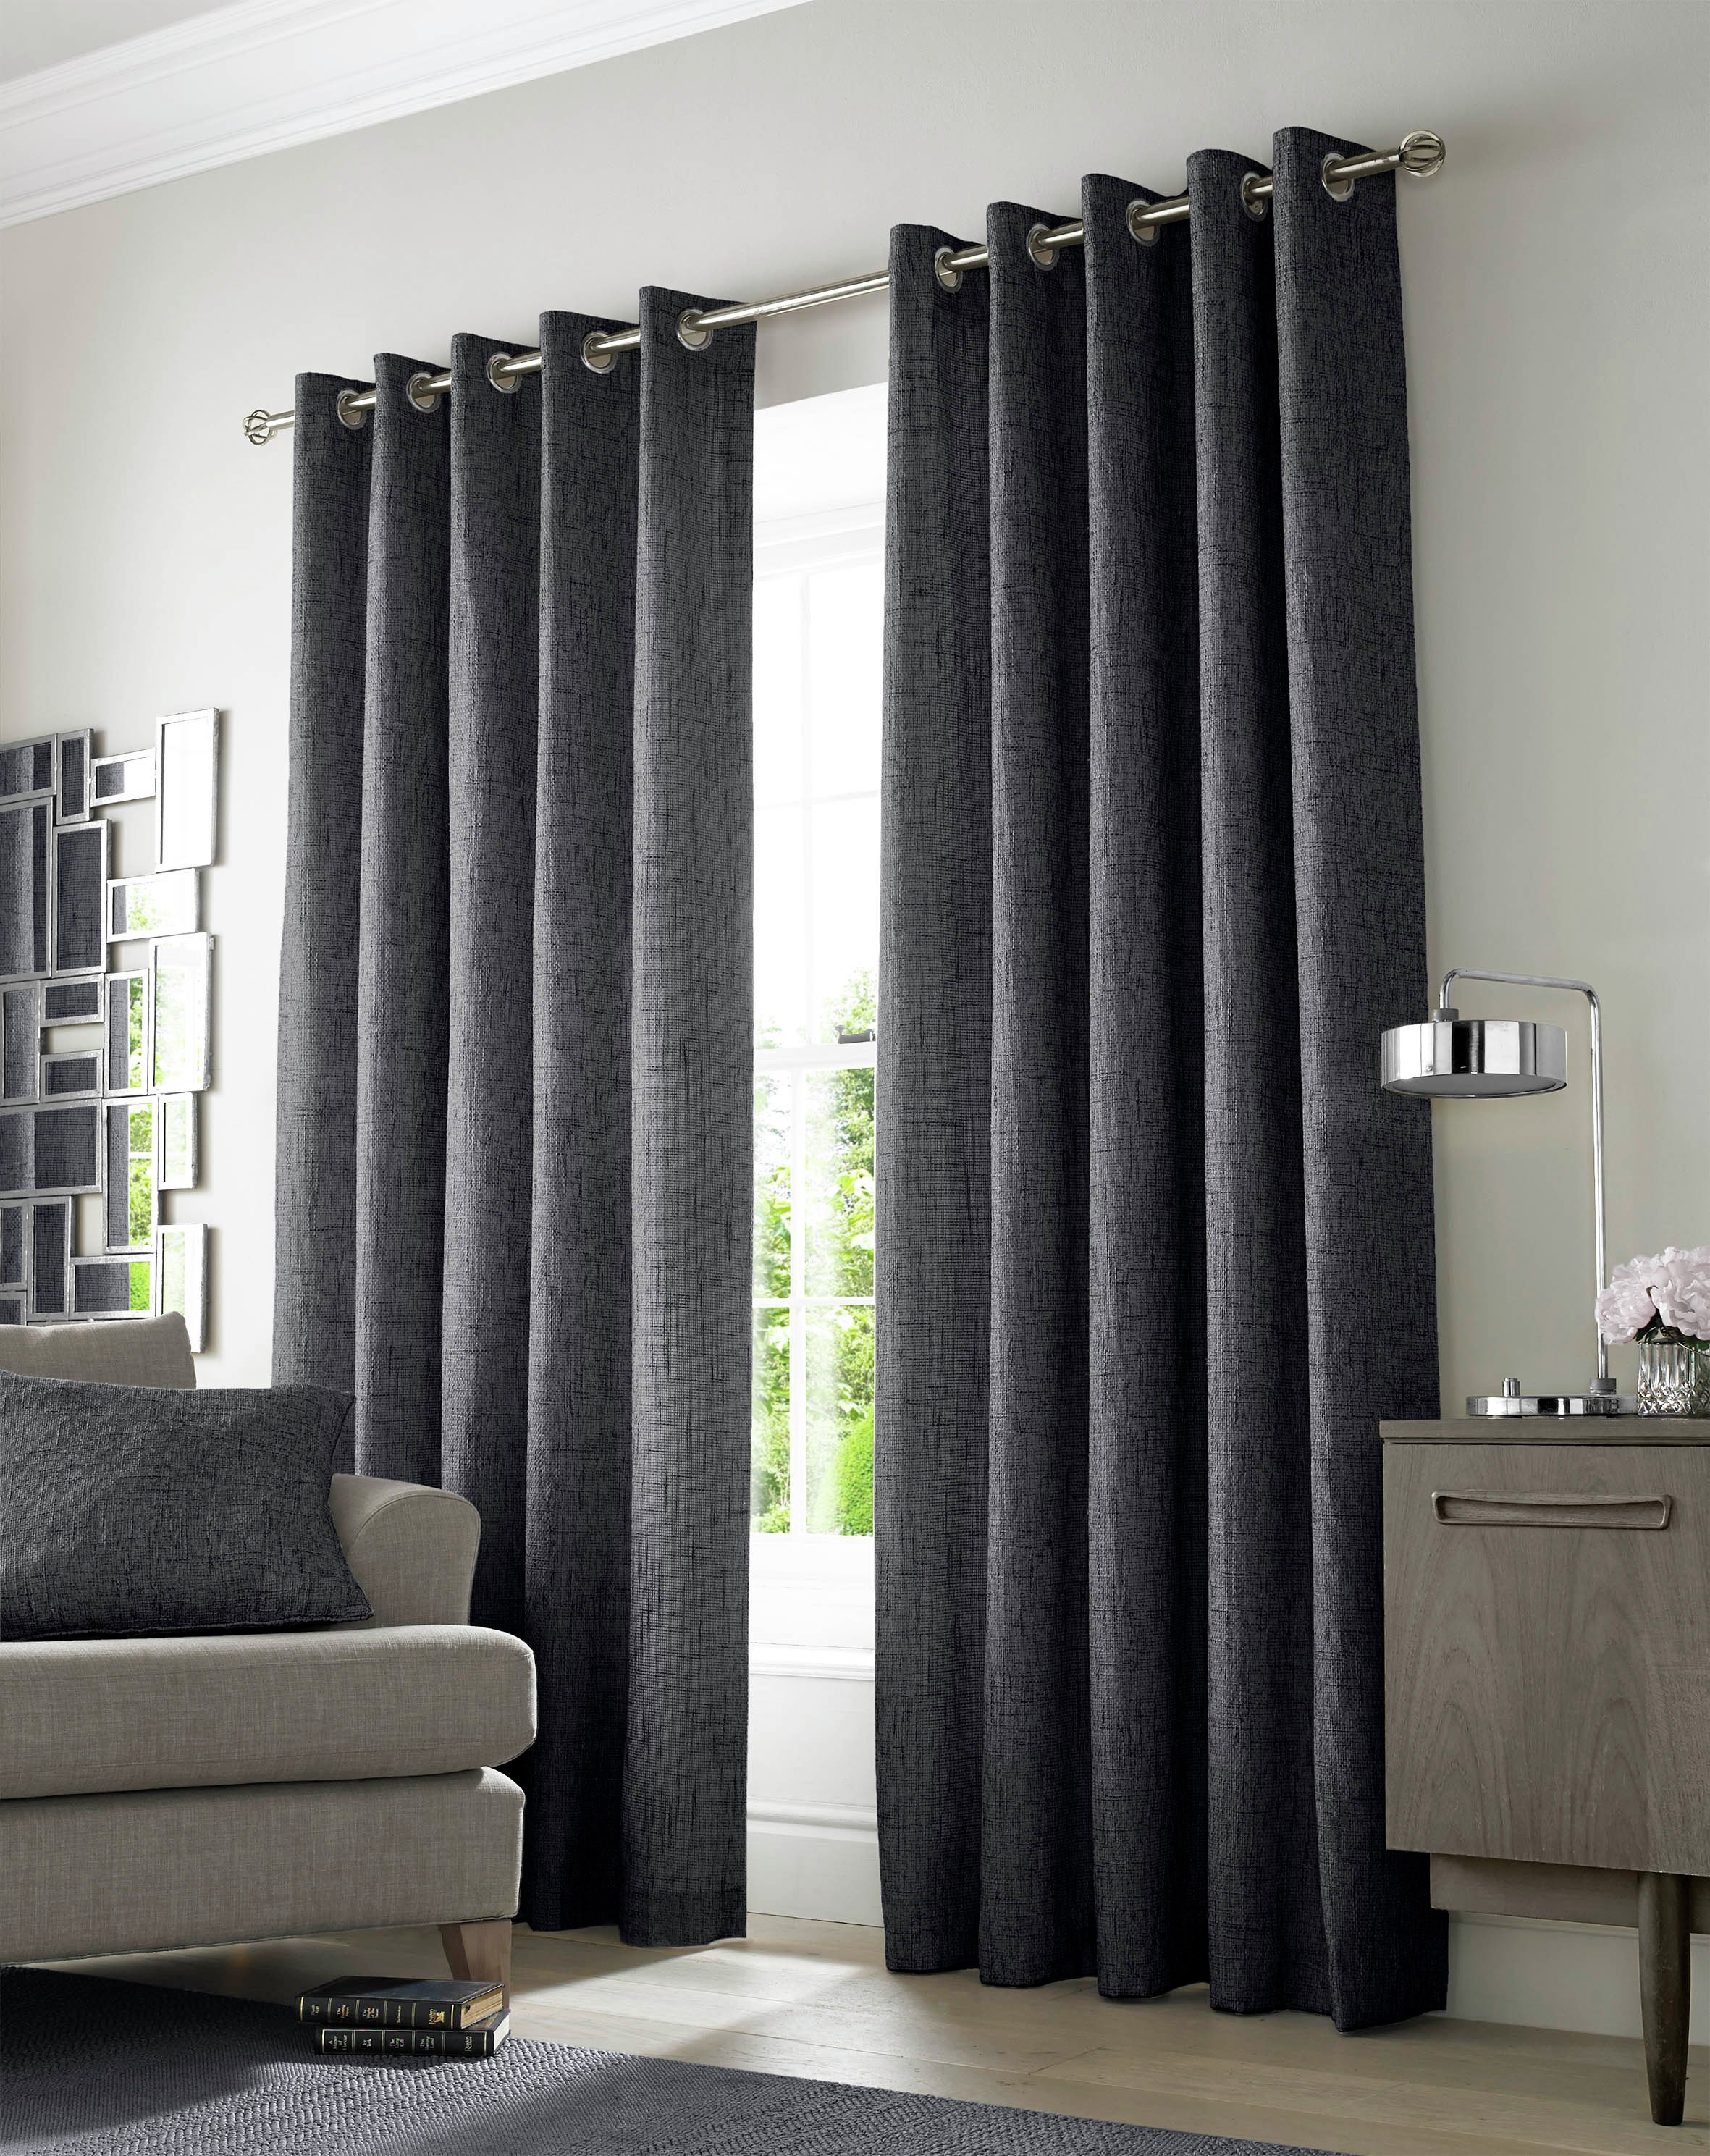 Image of Academy Eyelet Curtains - 165x183cm - Charcoal.